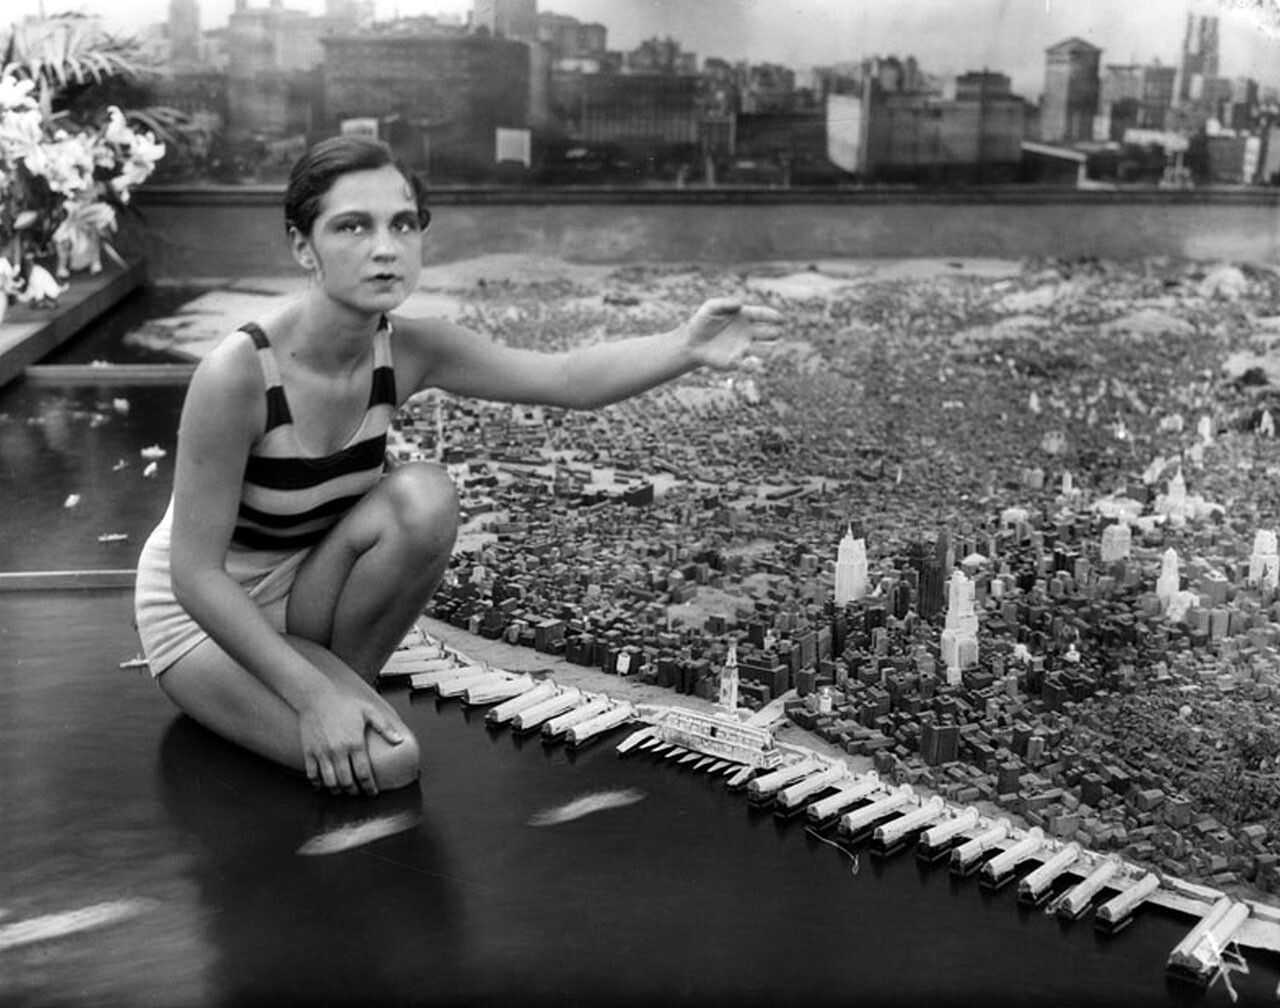 Model City. San Francisco brought a scale model of the city made from thousands of carved wood blocks. Photograph courtesy of Security Pacific National Bank Collection, Los Angeles Public Library